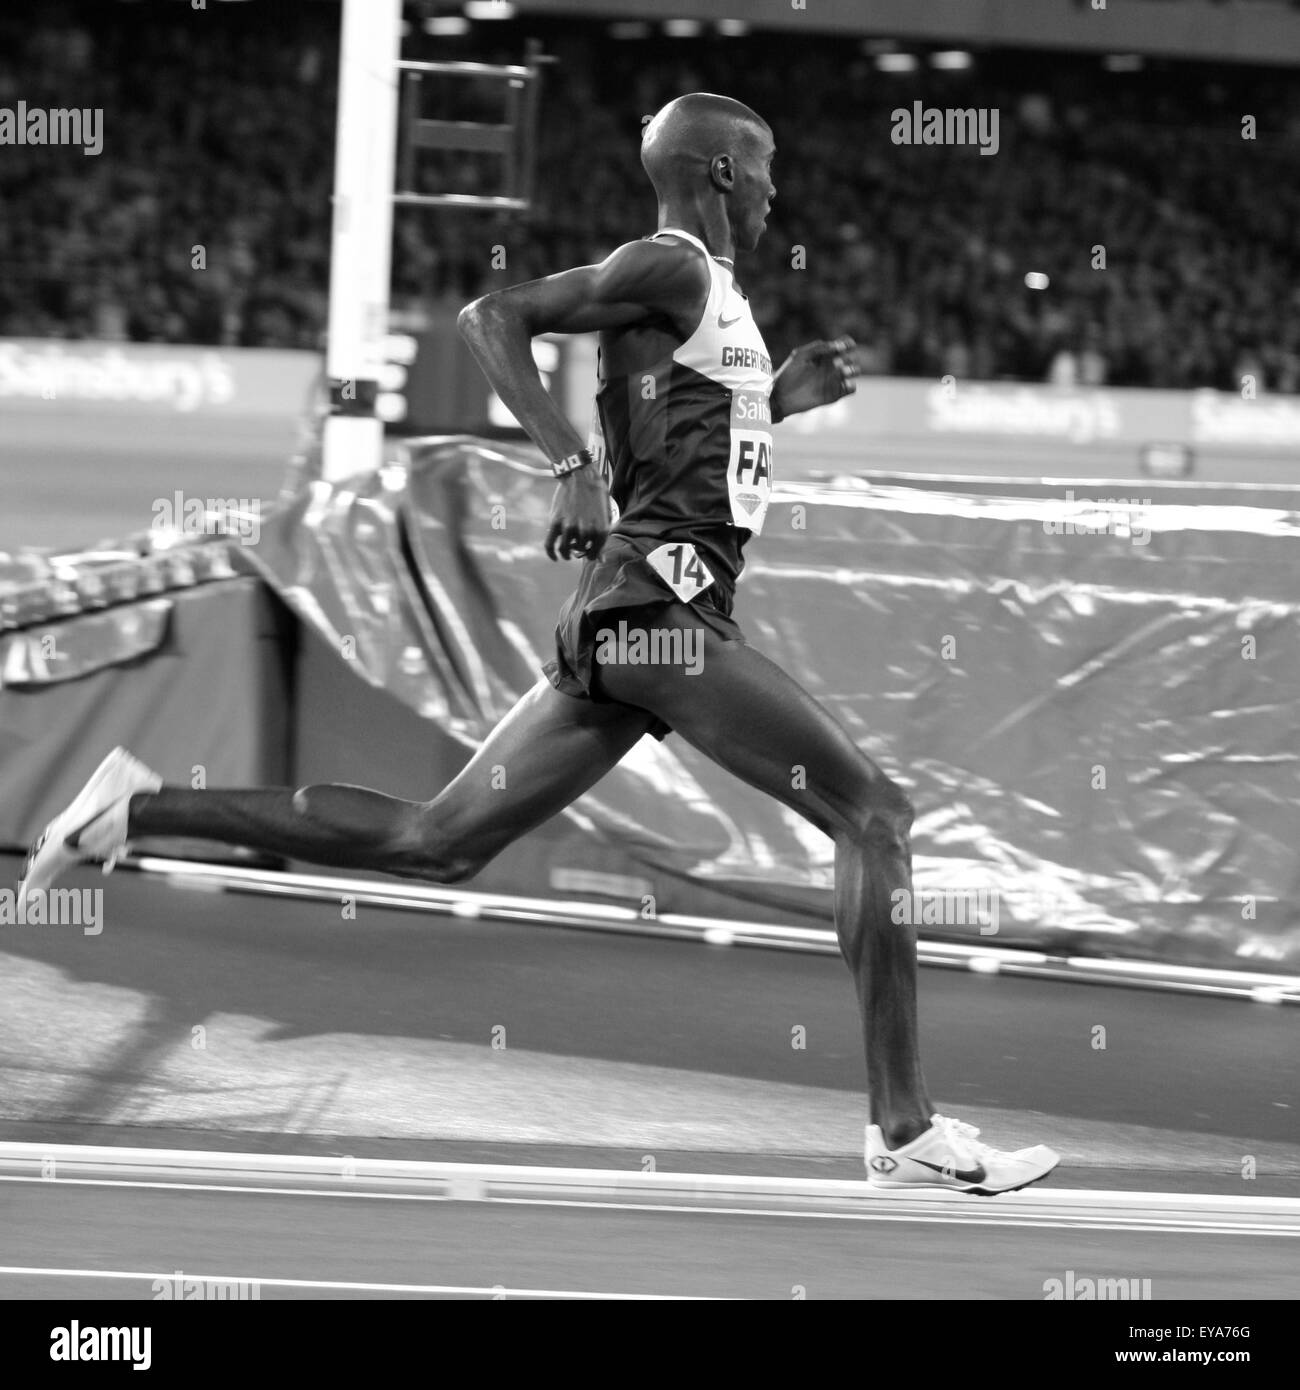 London, UK. 24th July, 2015. Mo Farah on his way to win the mens 3000m during the Sainsbury's Anniversary Games - Stock Image